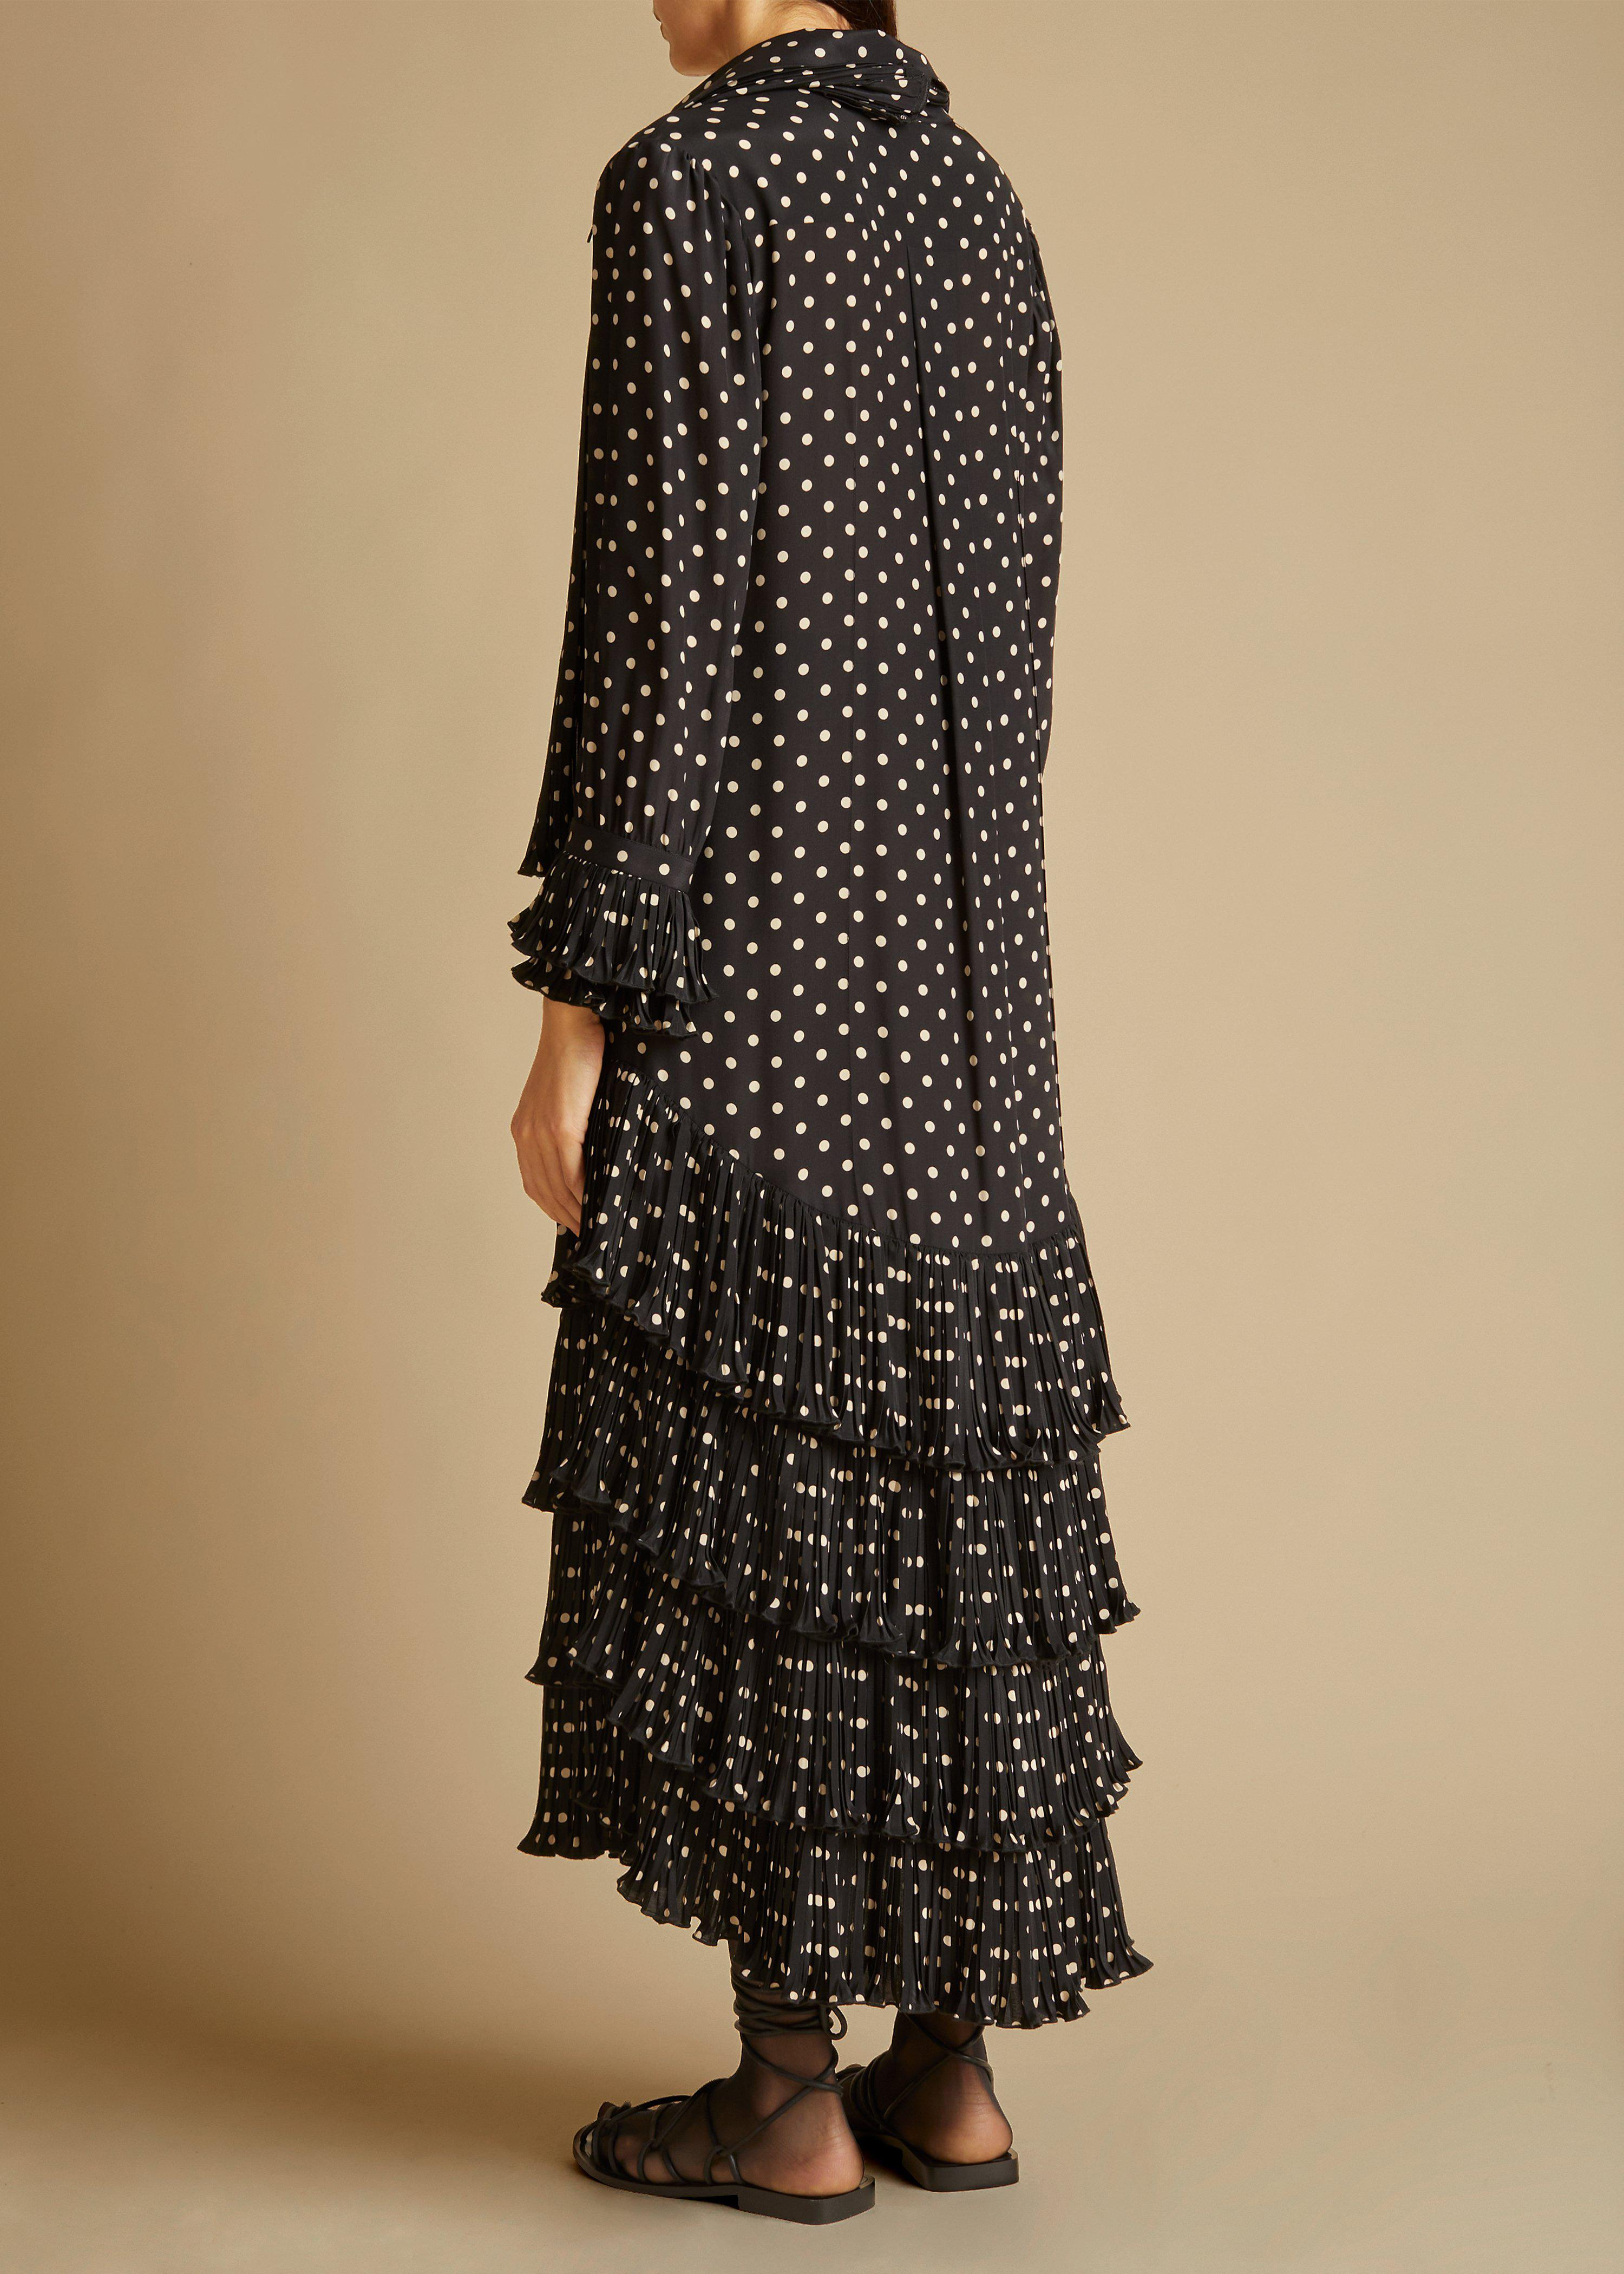 The Dolly Dress in Black and Creme Dot 2